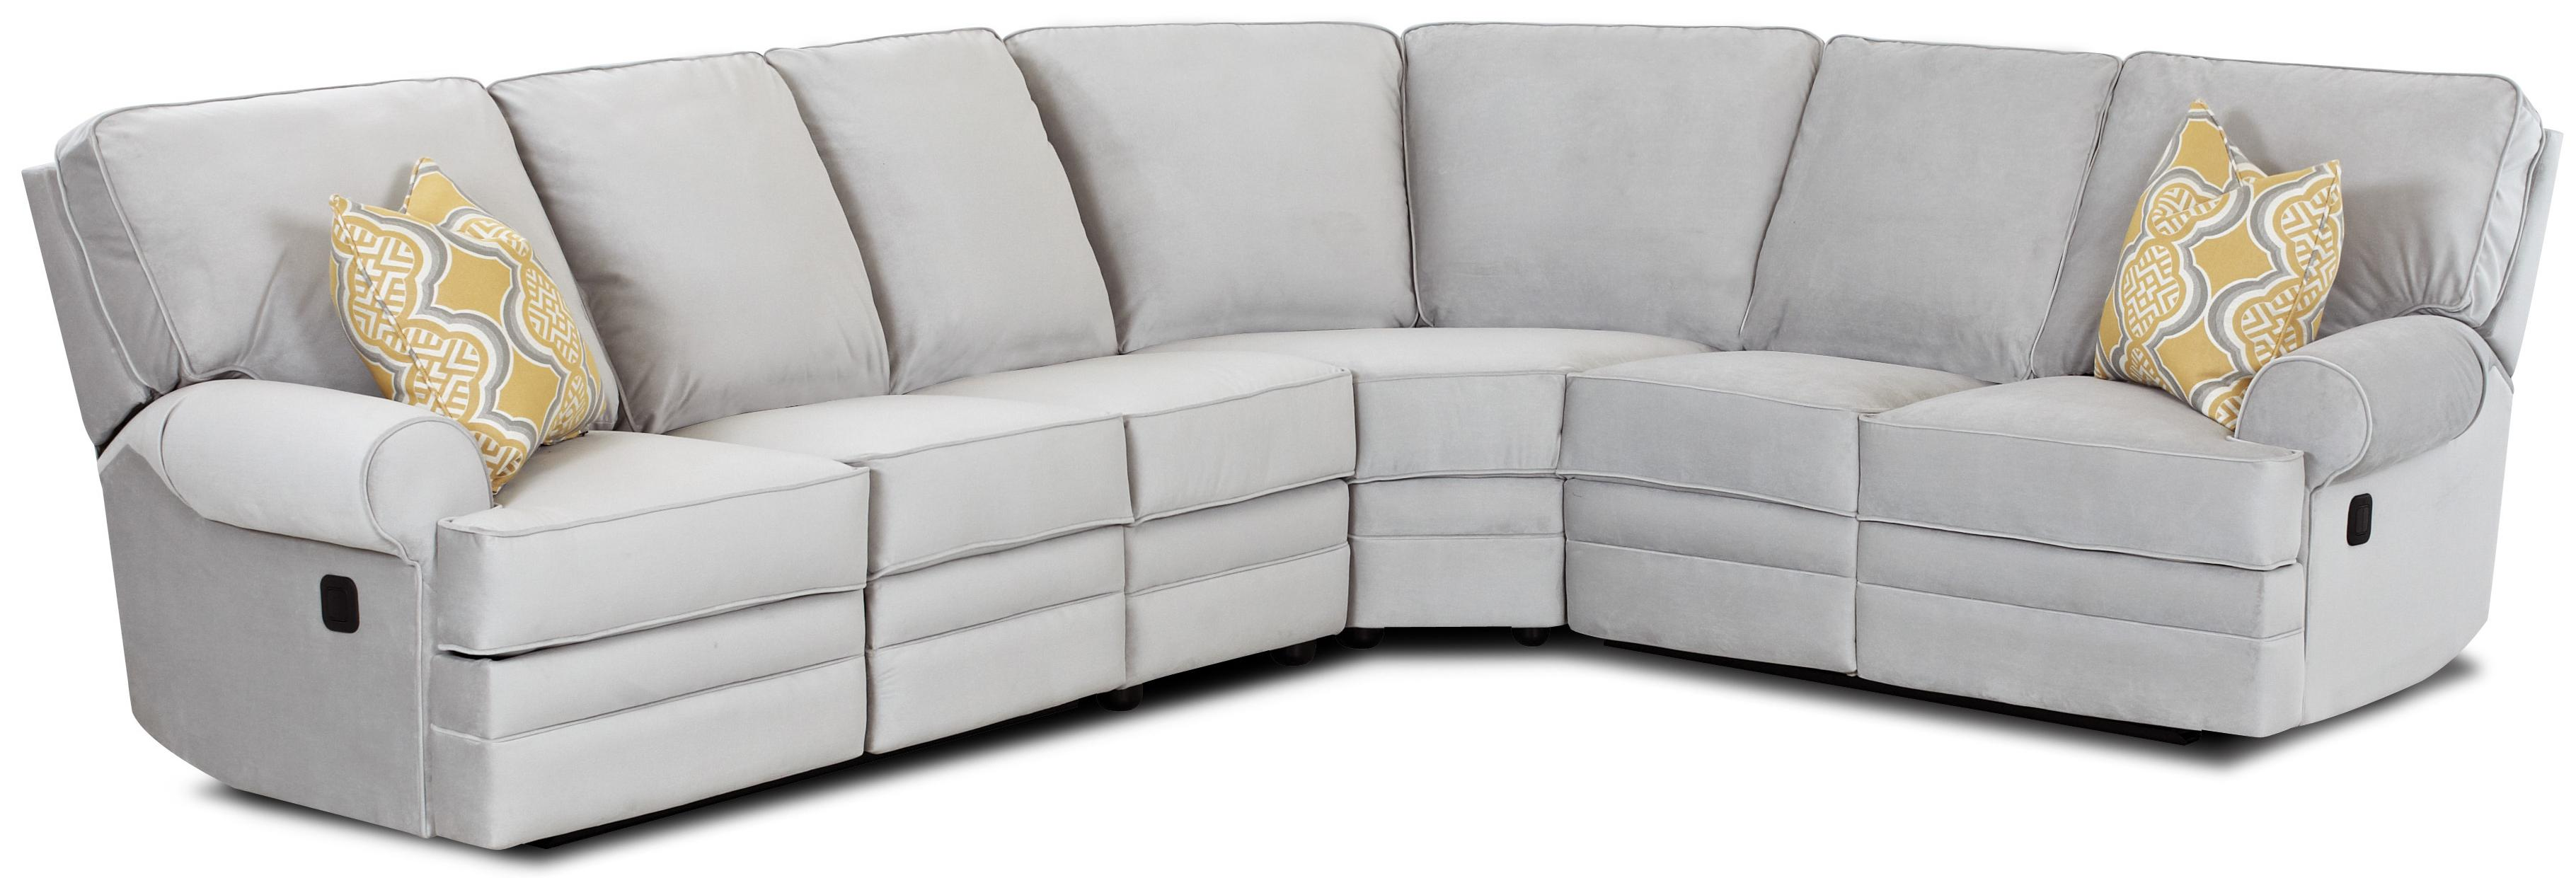 Classic Reclining Sectional Sofa with Rolled Arms by